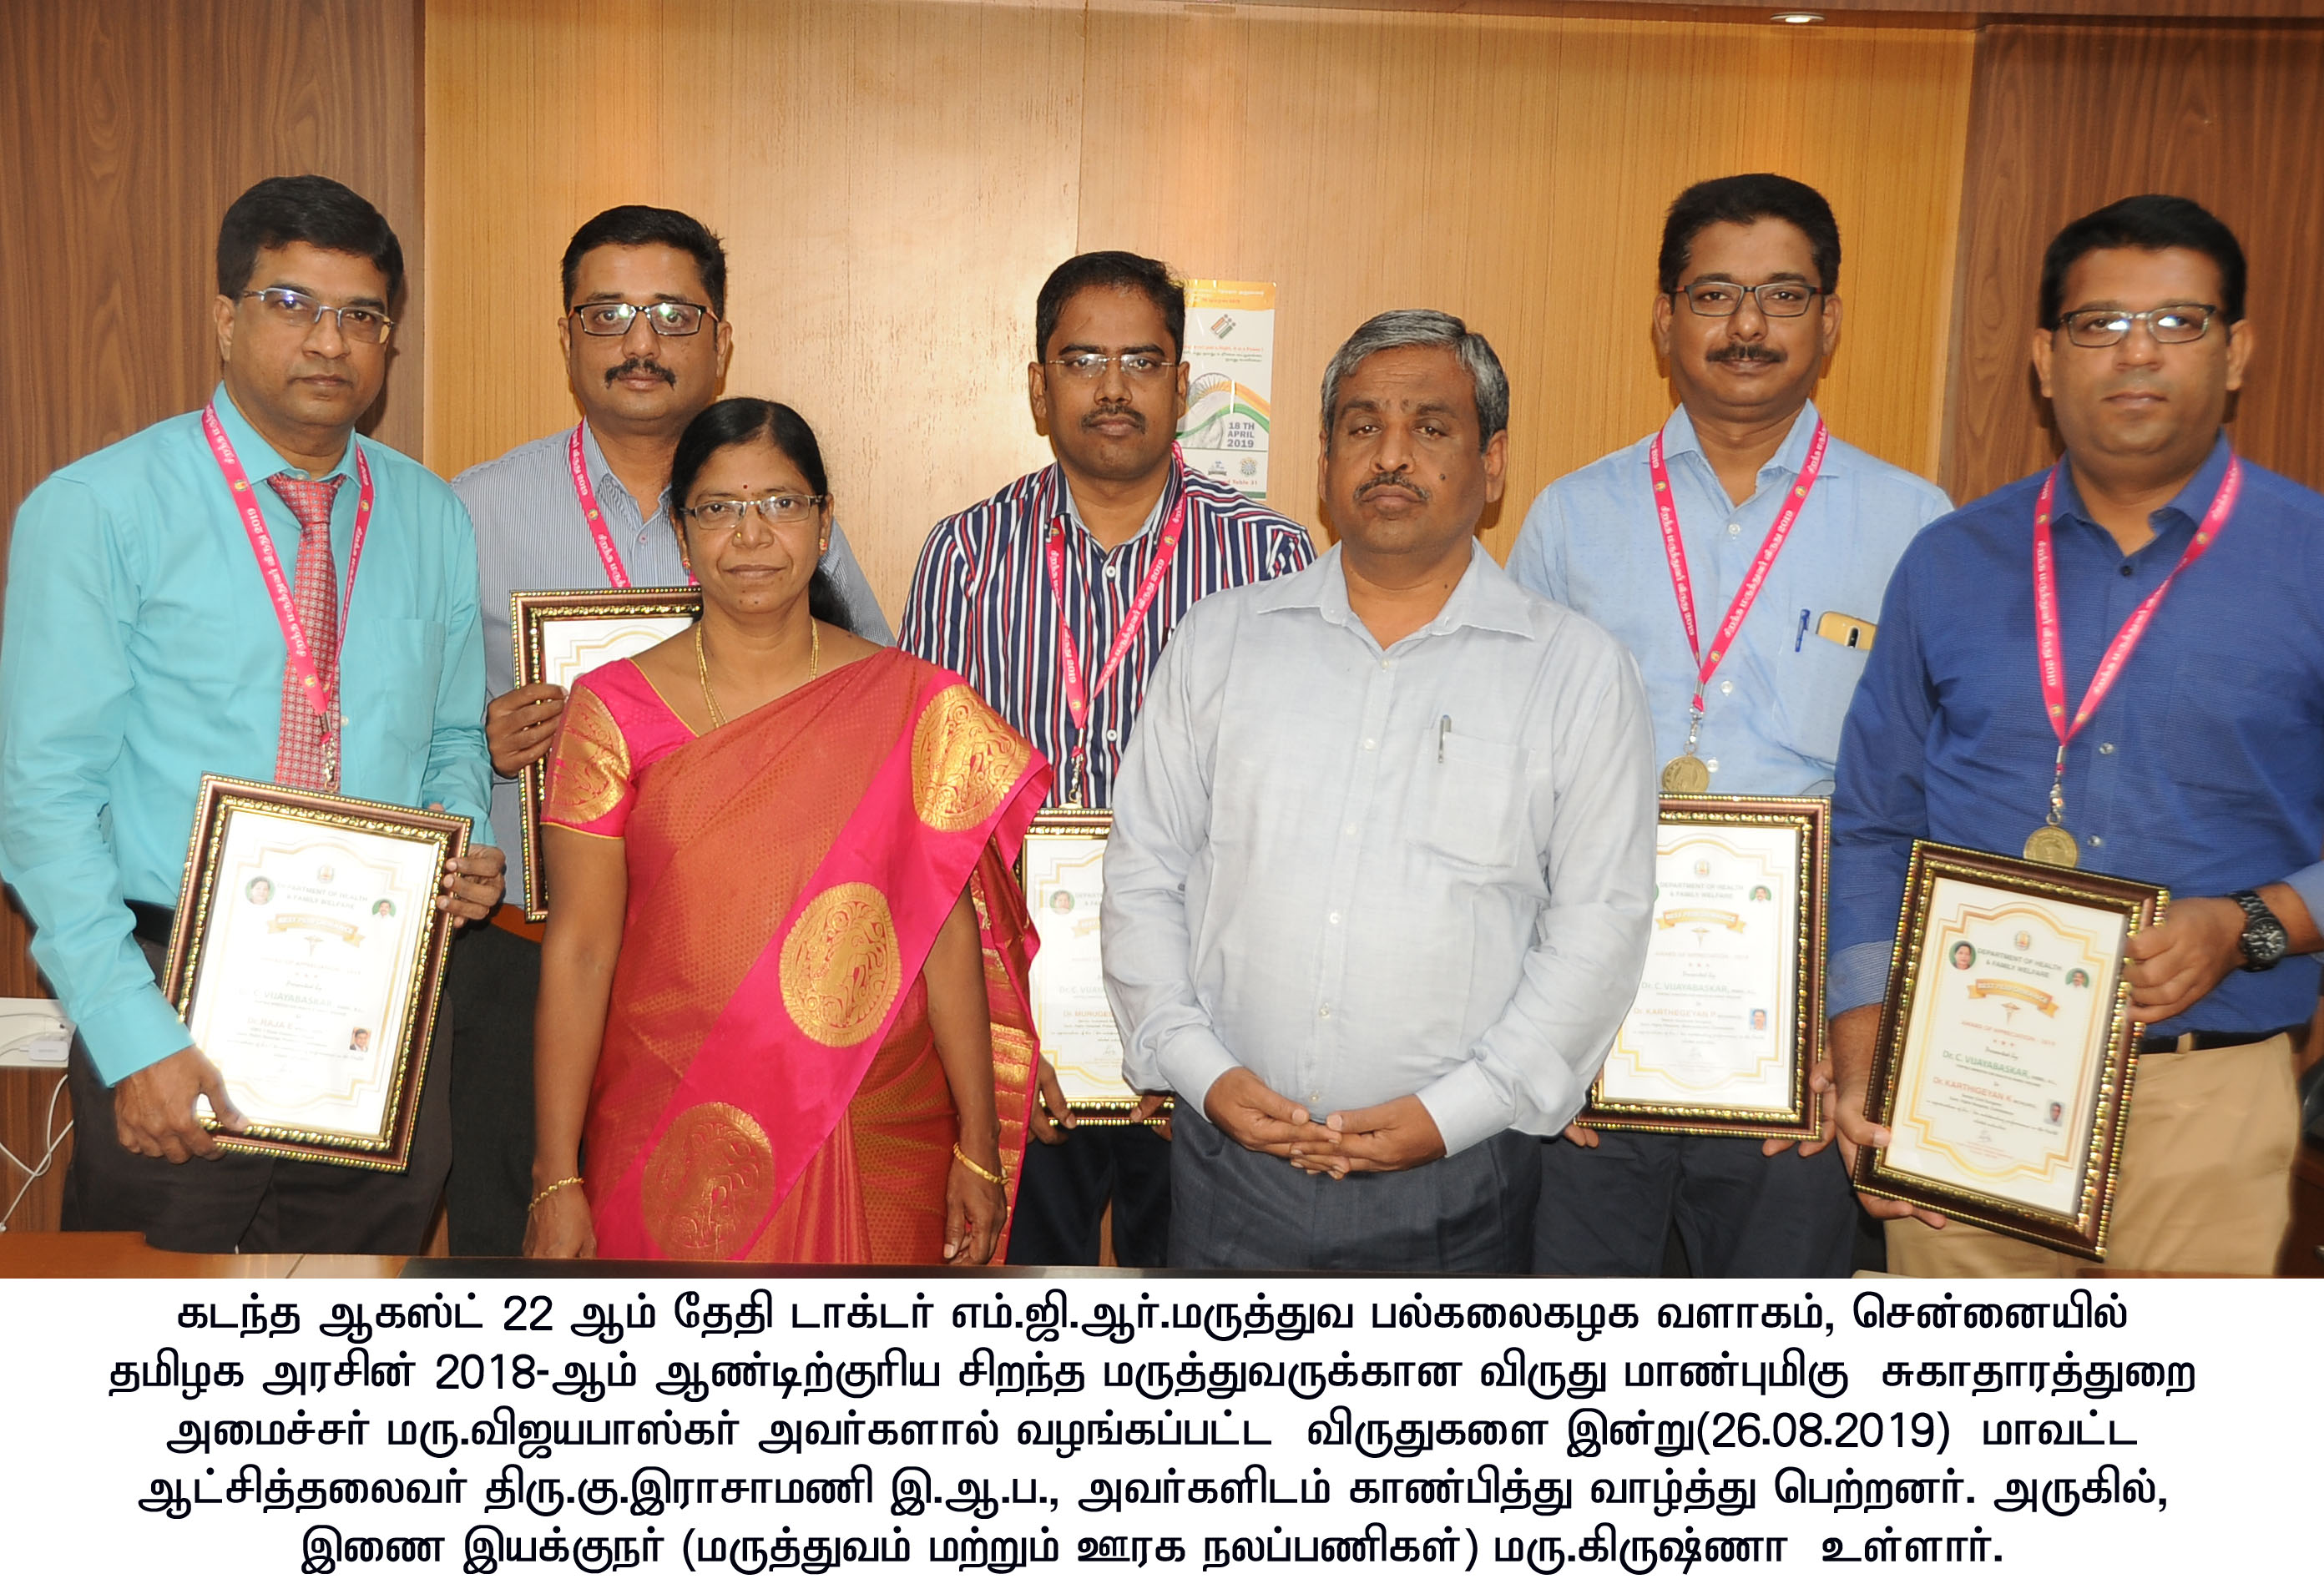 Govt of Tamil Nadu Best doctor Award Distributed